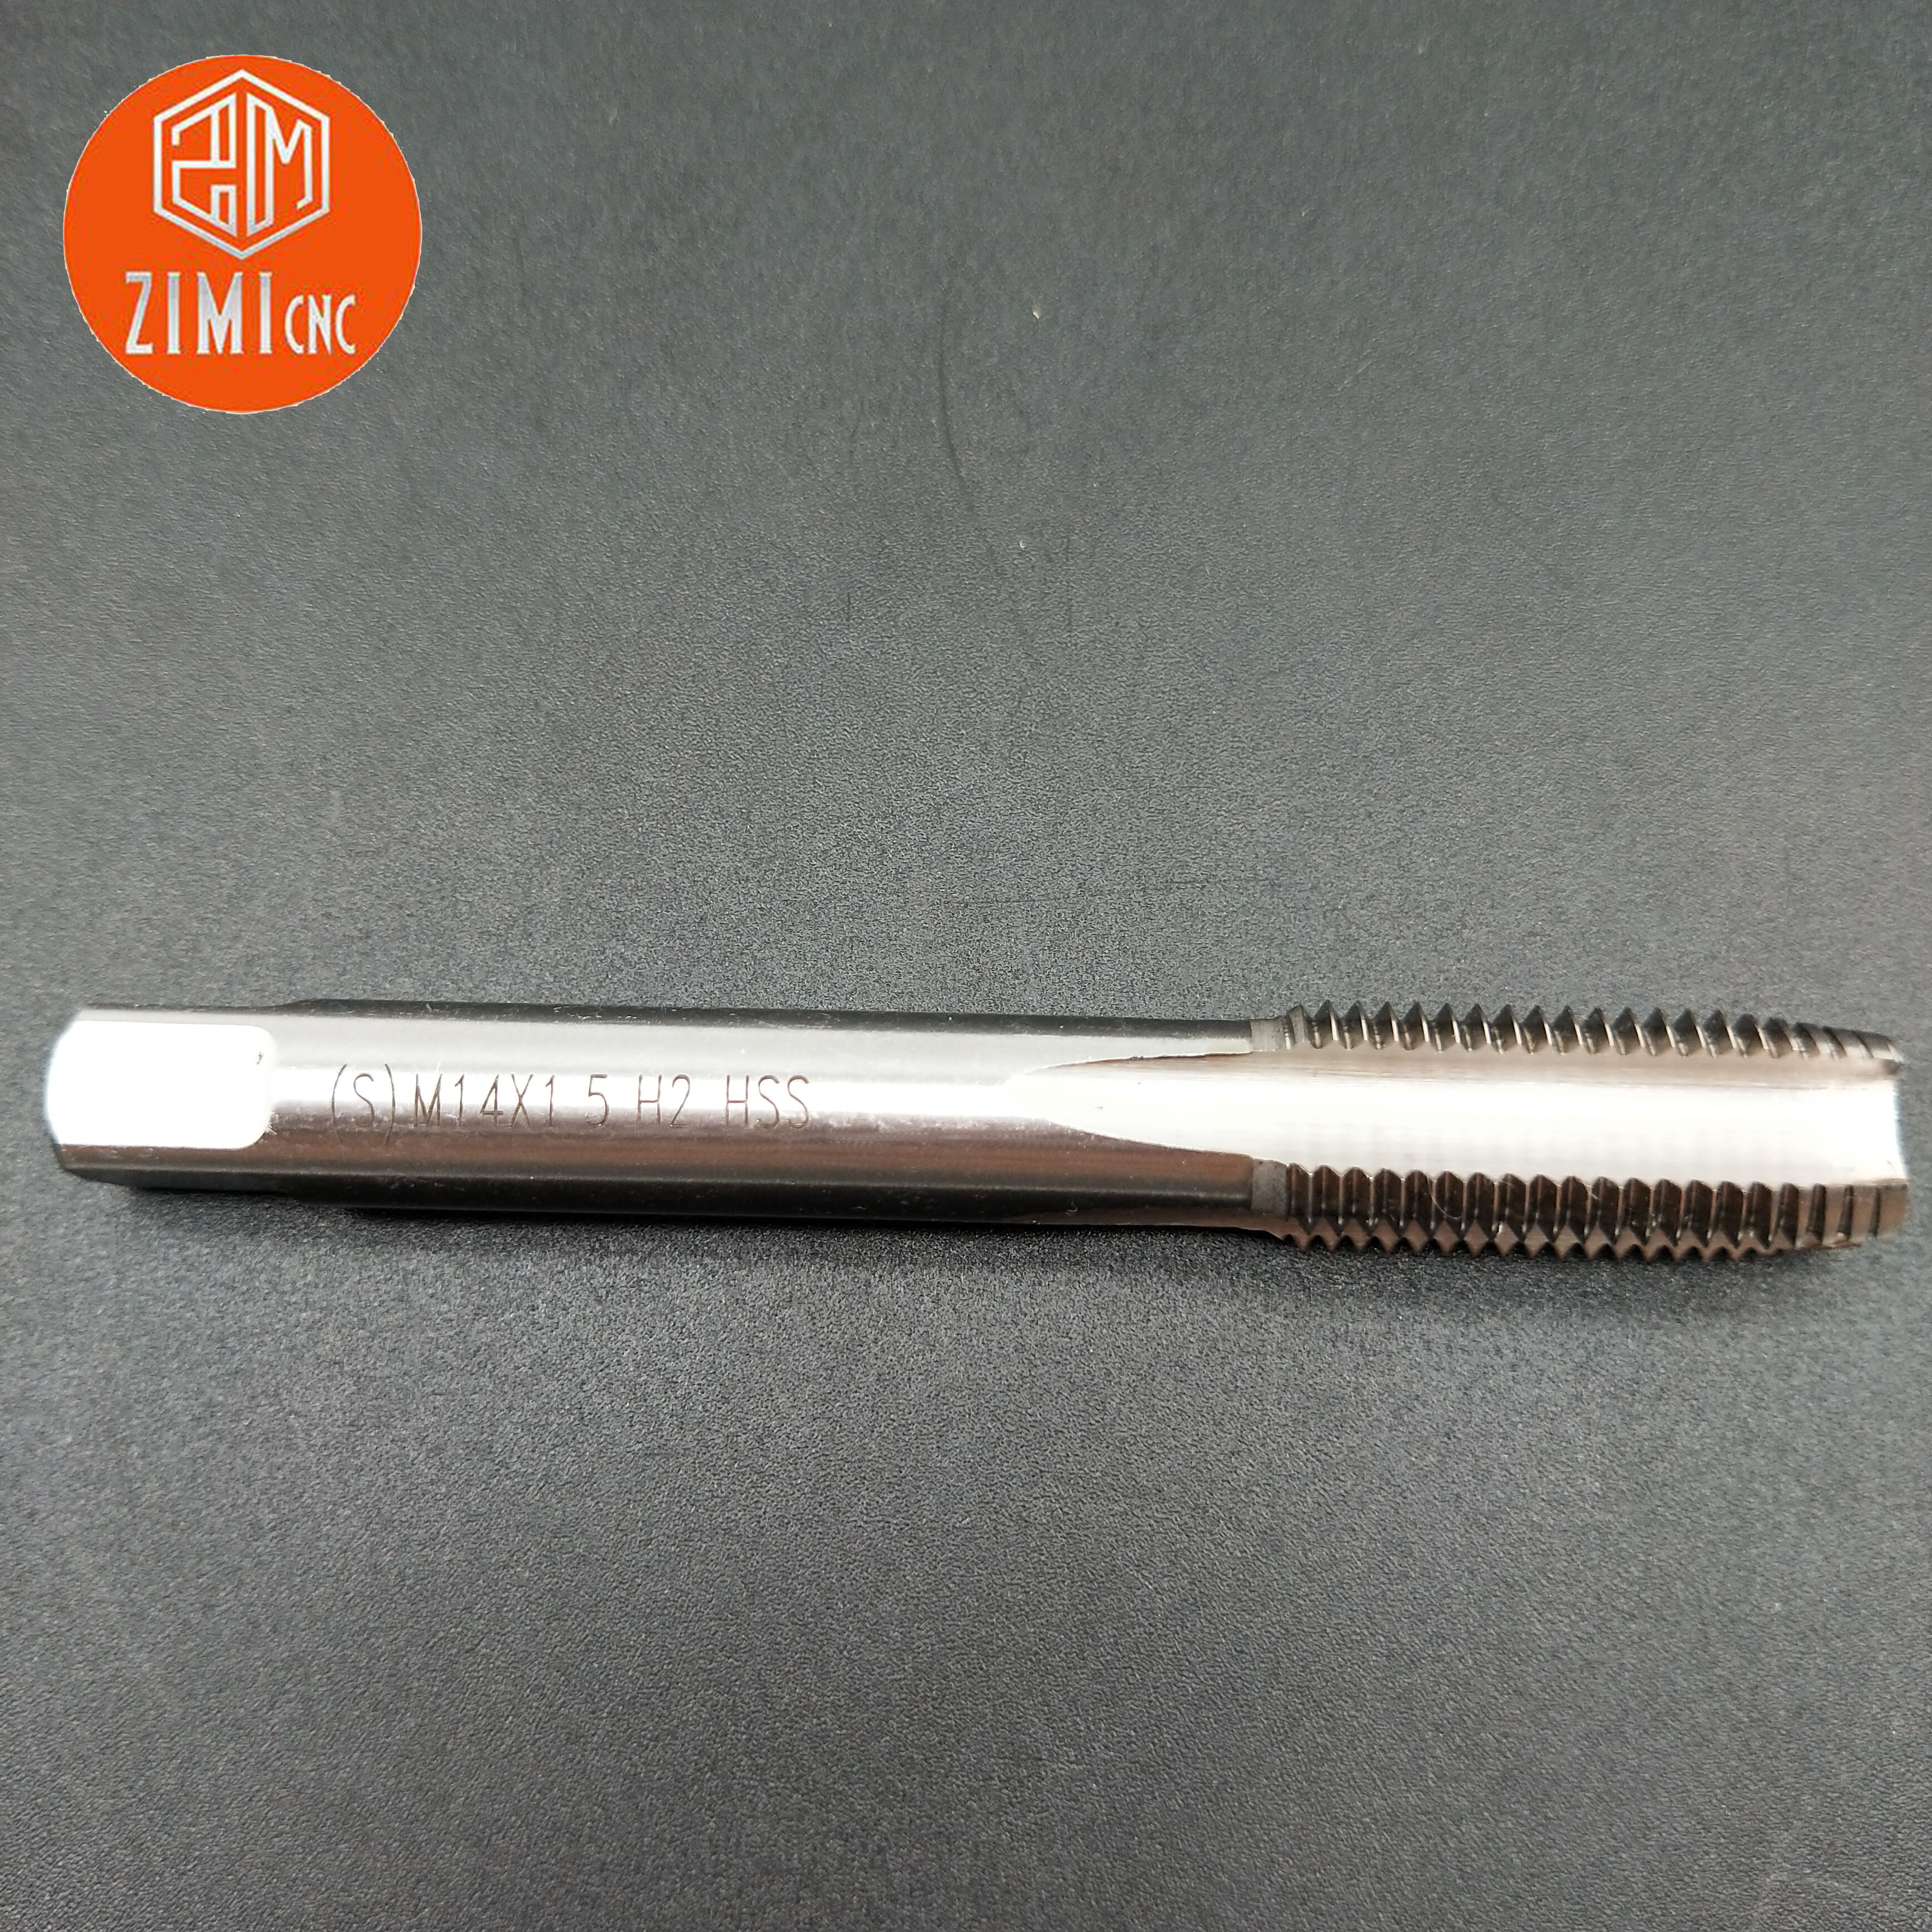 M6 x 1.0 x 100mm Reduced Long Shank Right Hand Thread Tap